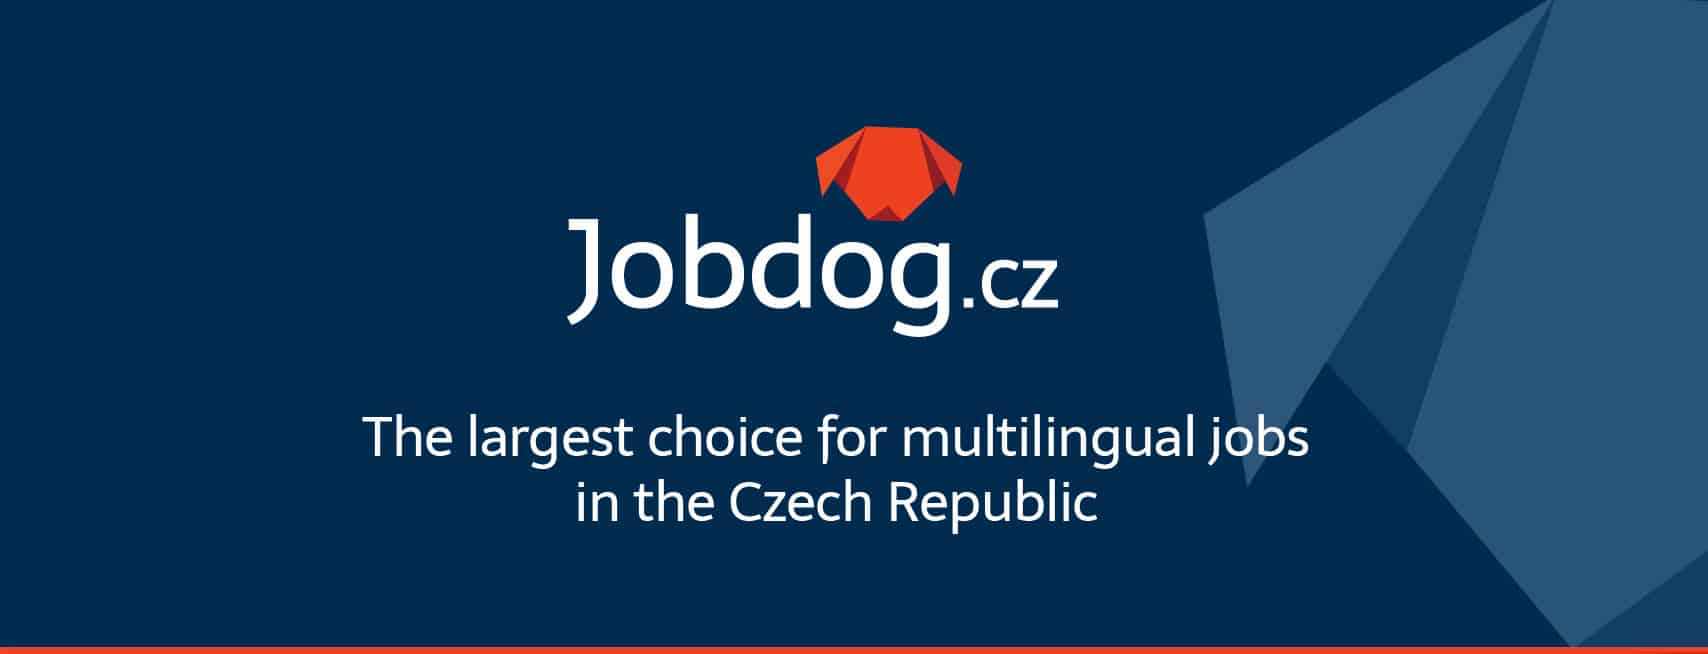 Let Your Languages Land You a Job!